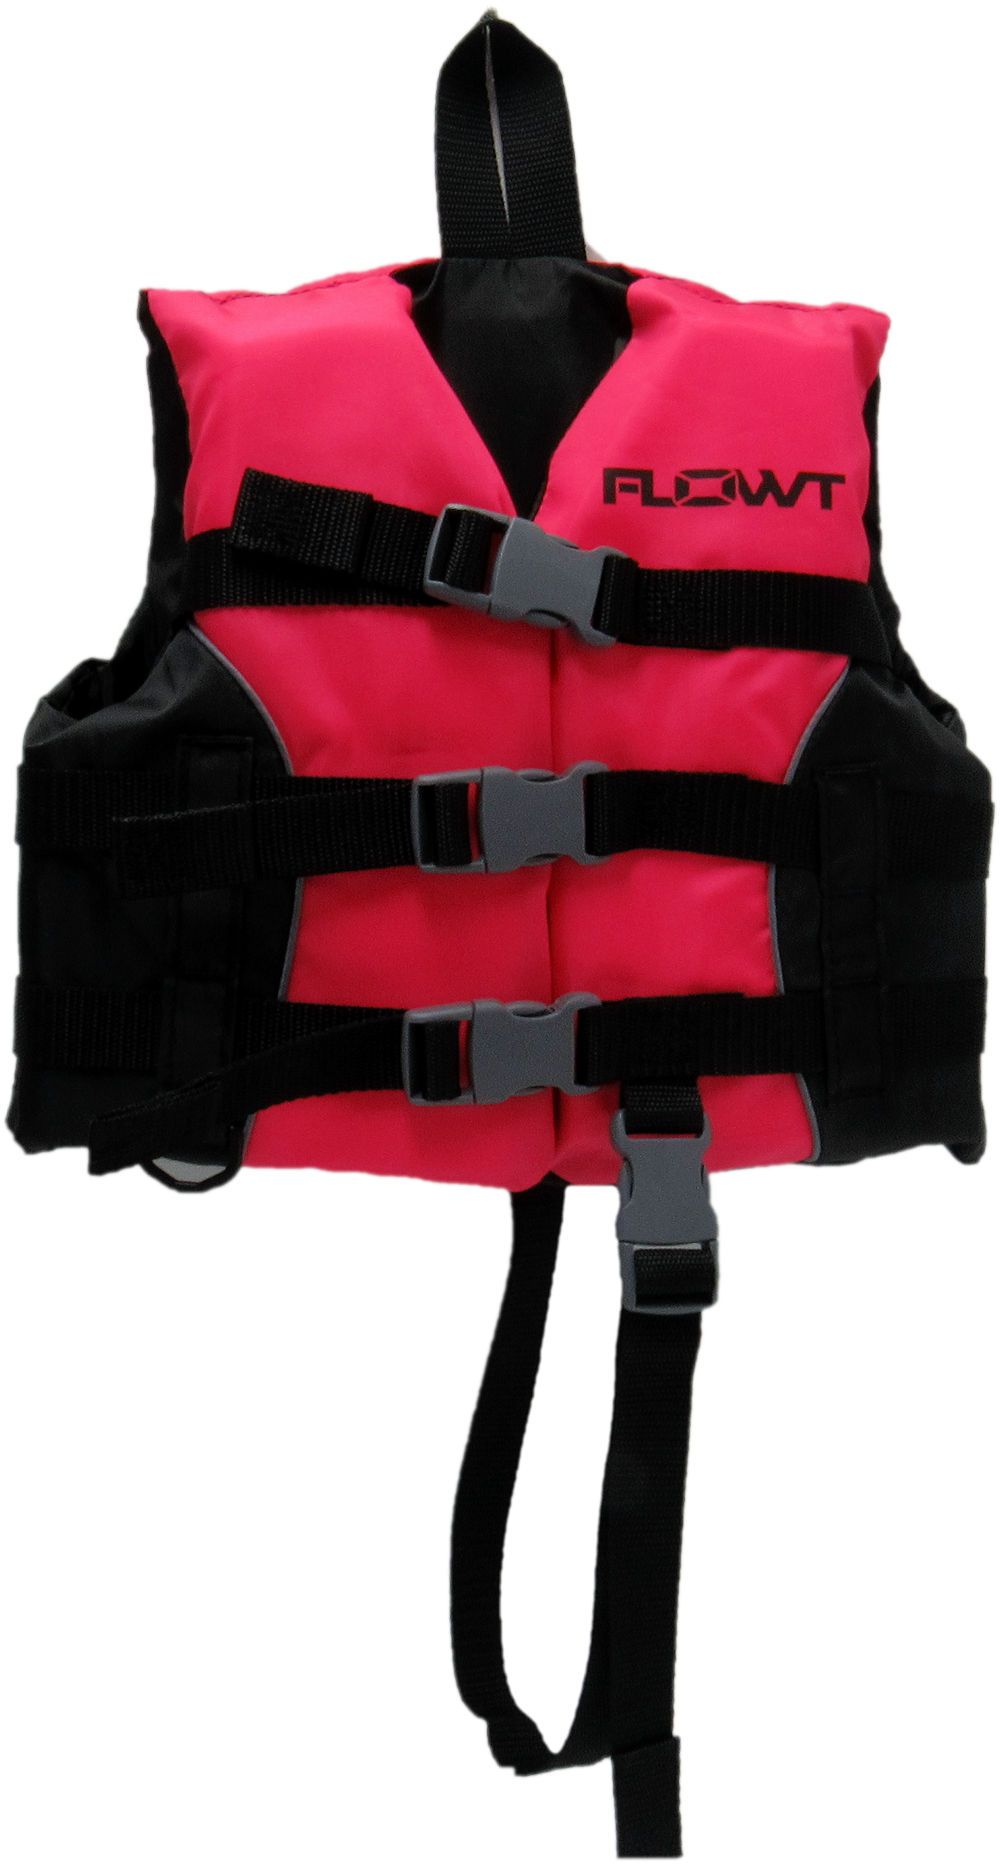 Omega Flowt Child Multi-Sport Life Jacket PFD Type III 30-50 Pounds Hot Pink by Omega